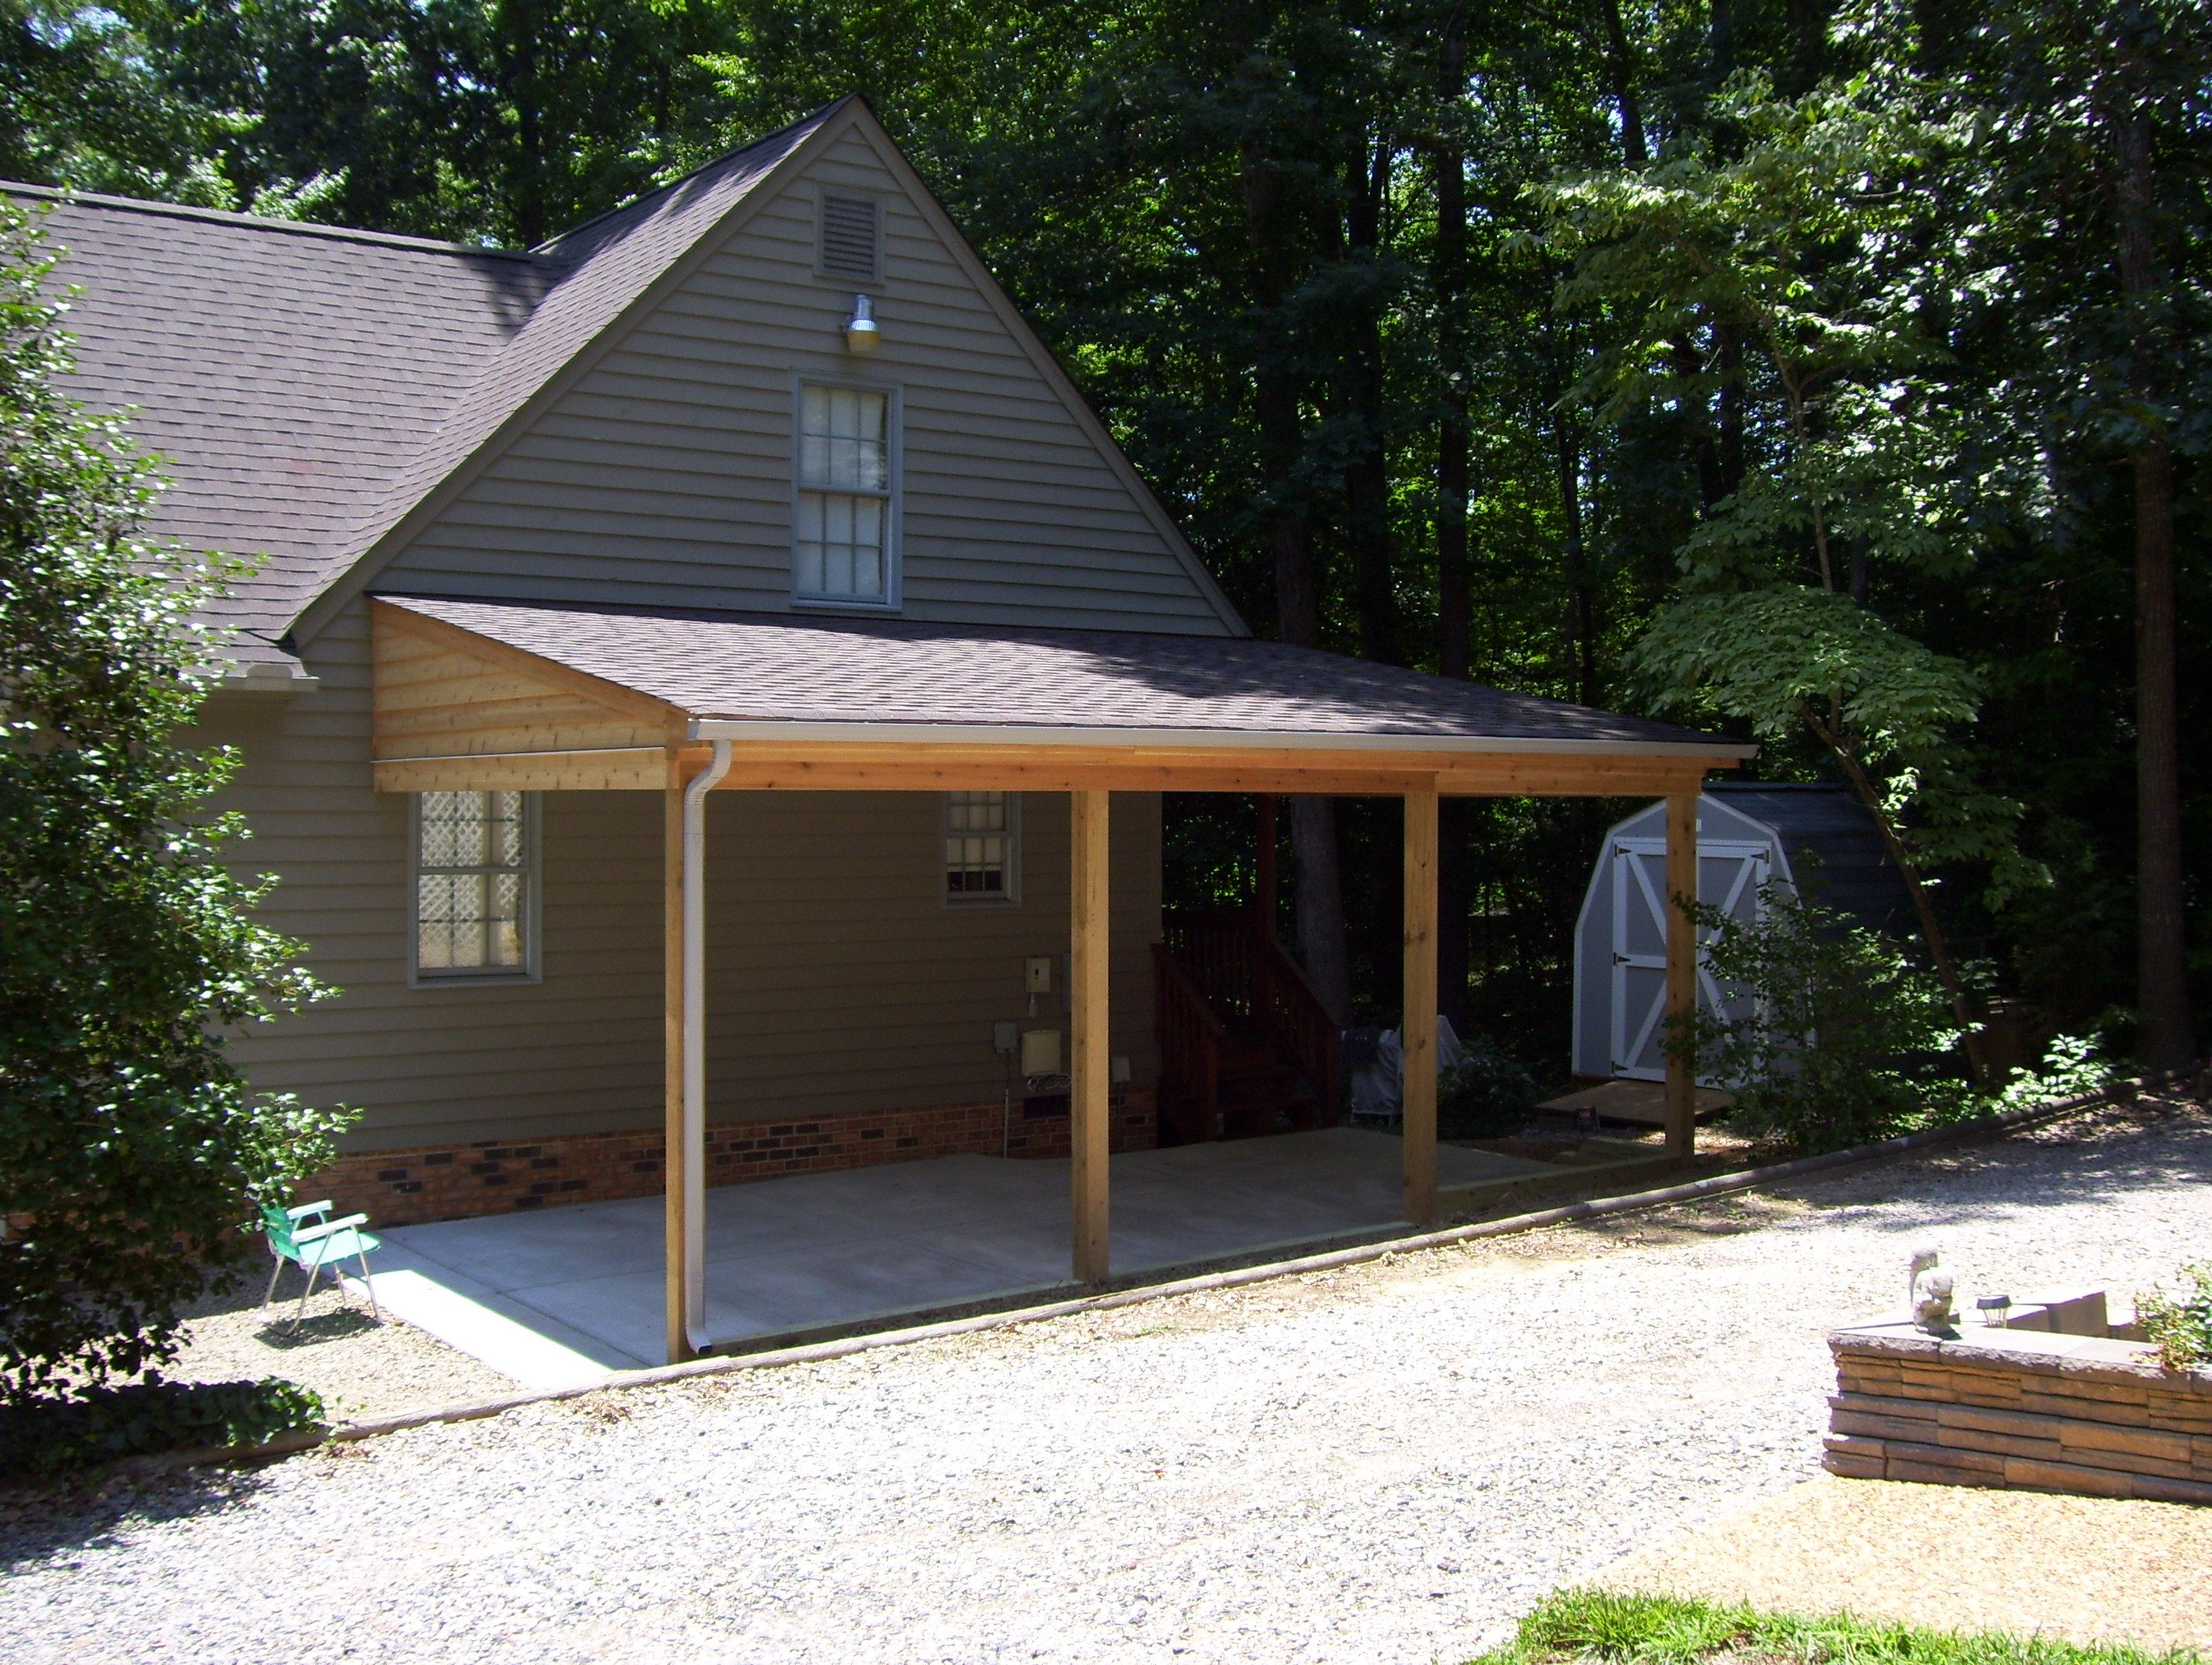 Attached carport photos house remodel pinterest for Carport blueprints